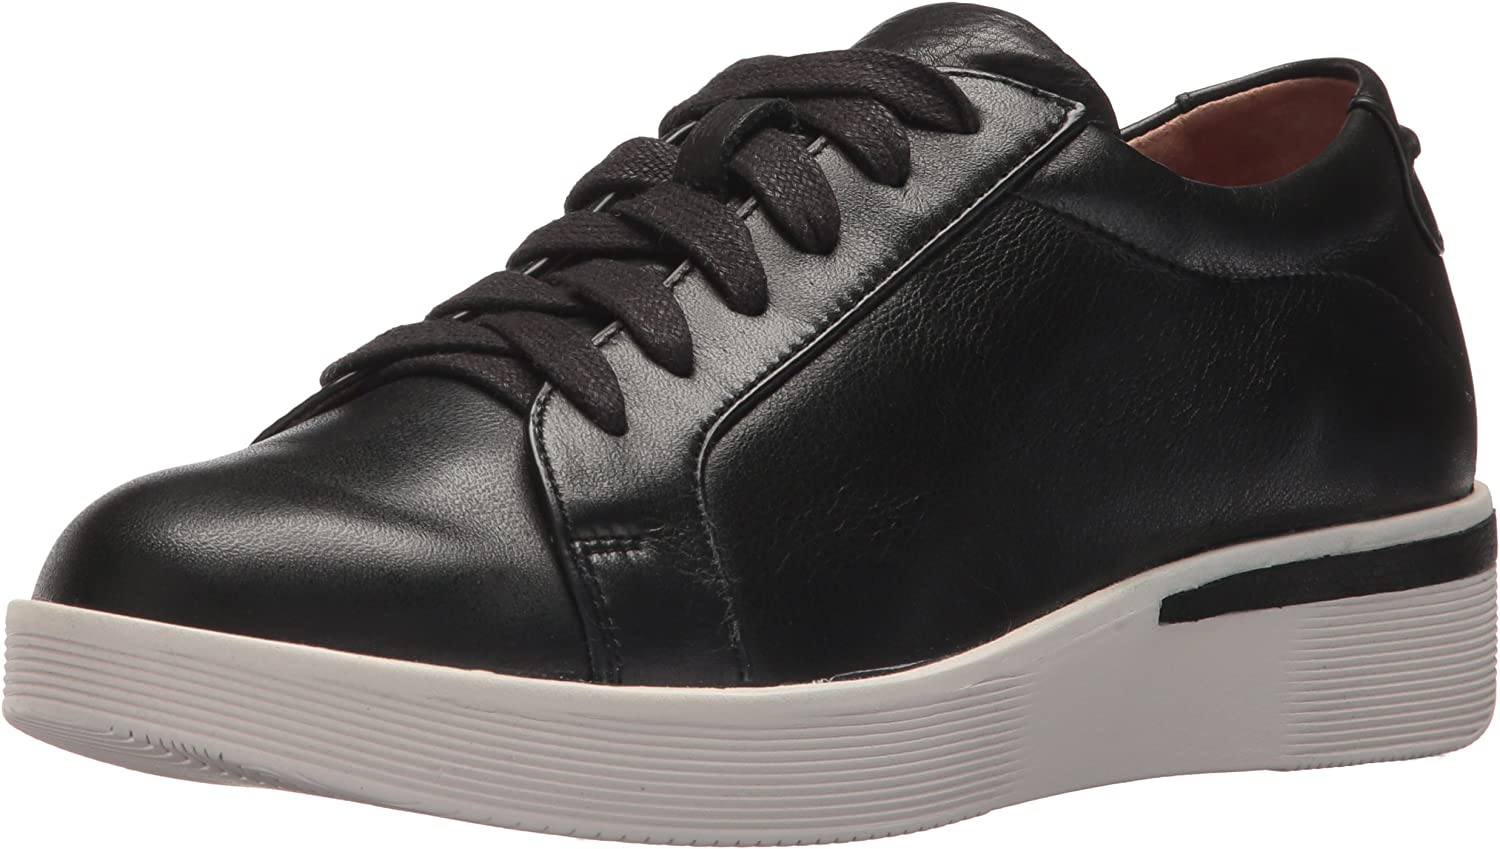 Gentle Souls by Kenneth Cole Womens PARC Low Top Lace-up Sneaker